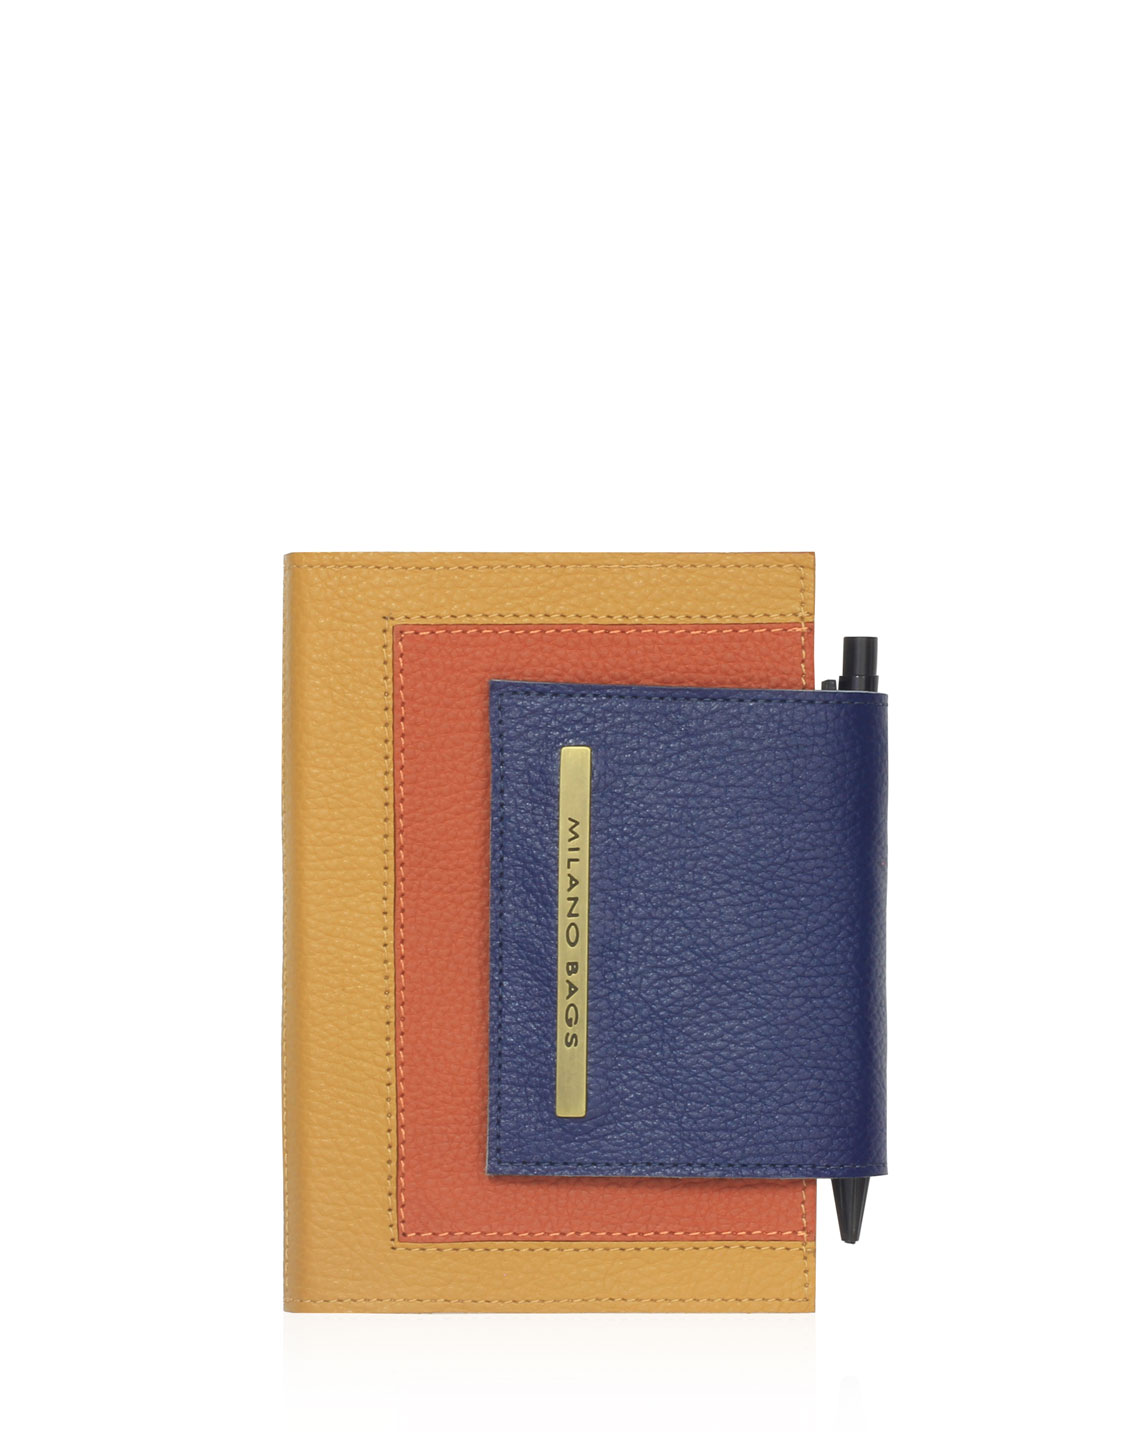 Agenda AG-121 Color Amarillo